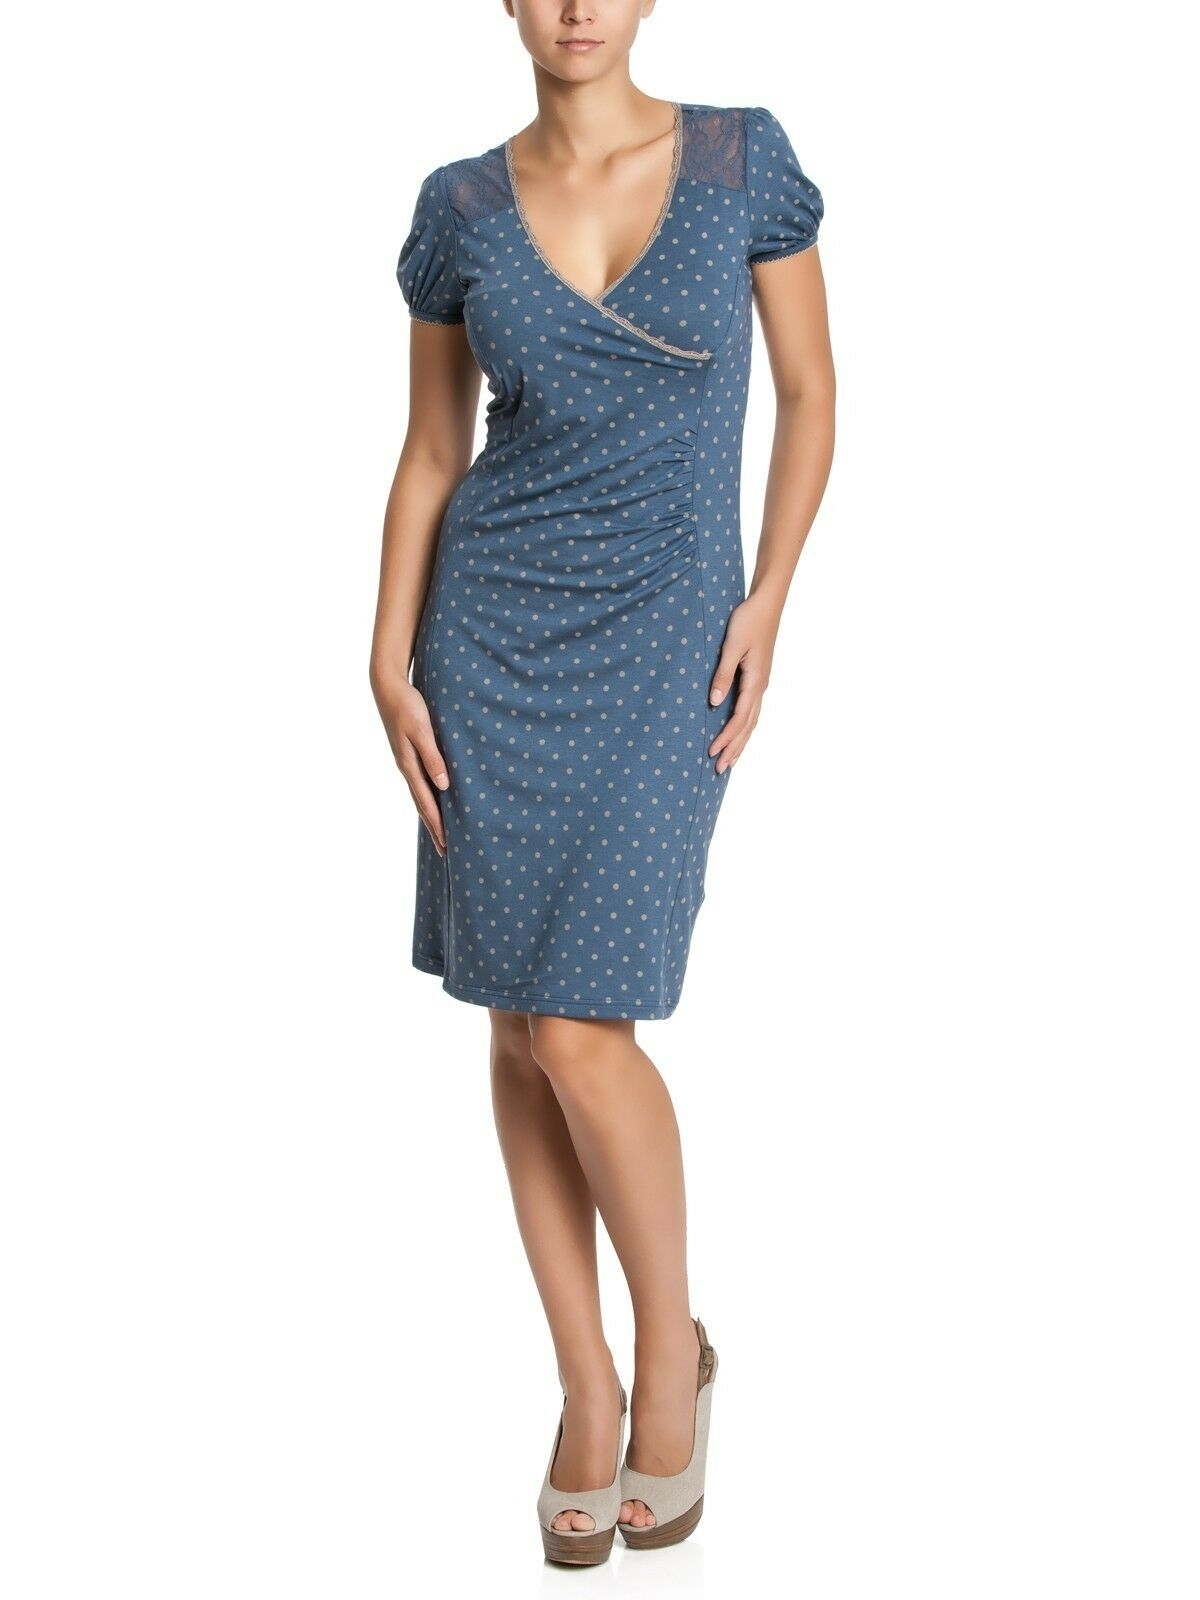 Vive Maria Kleid Punkte Blau Spitze Lace Spot At Blau Dress Blau 31454